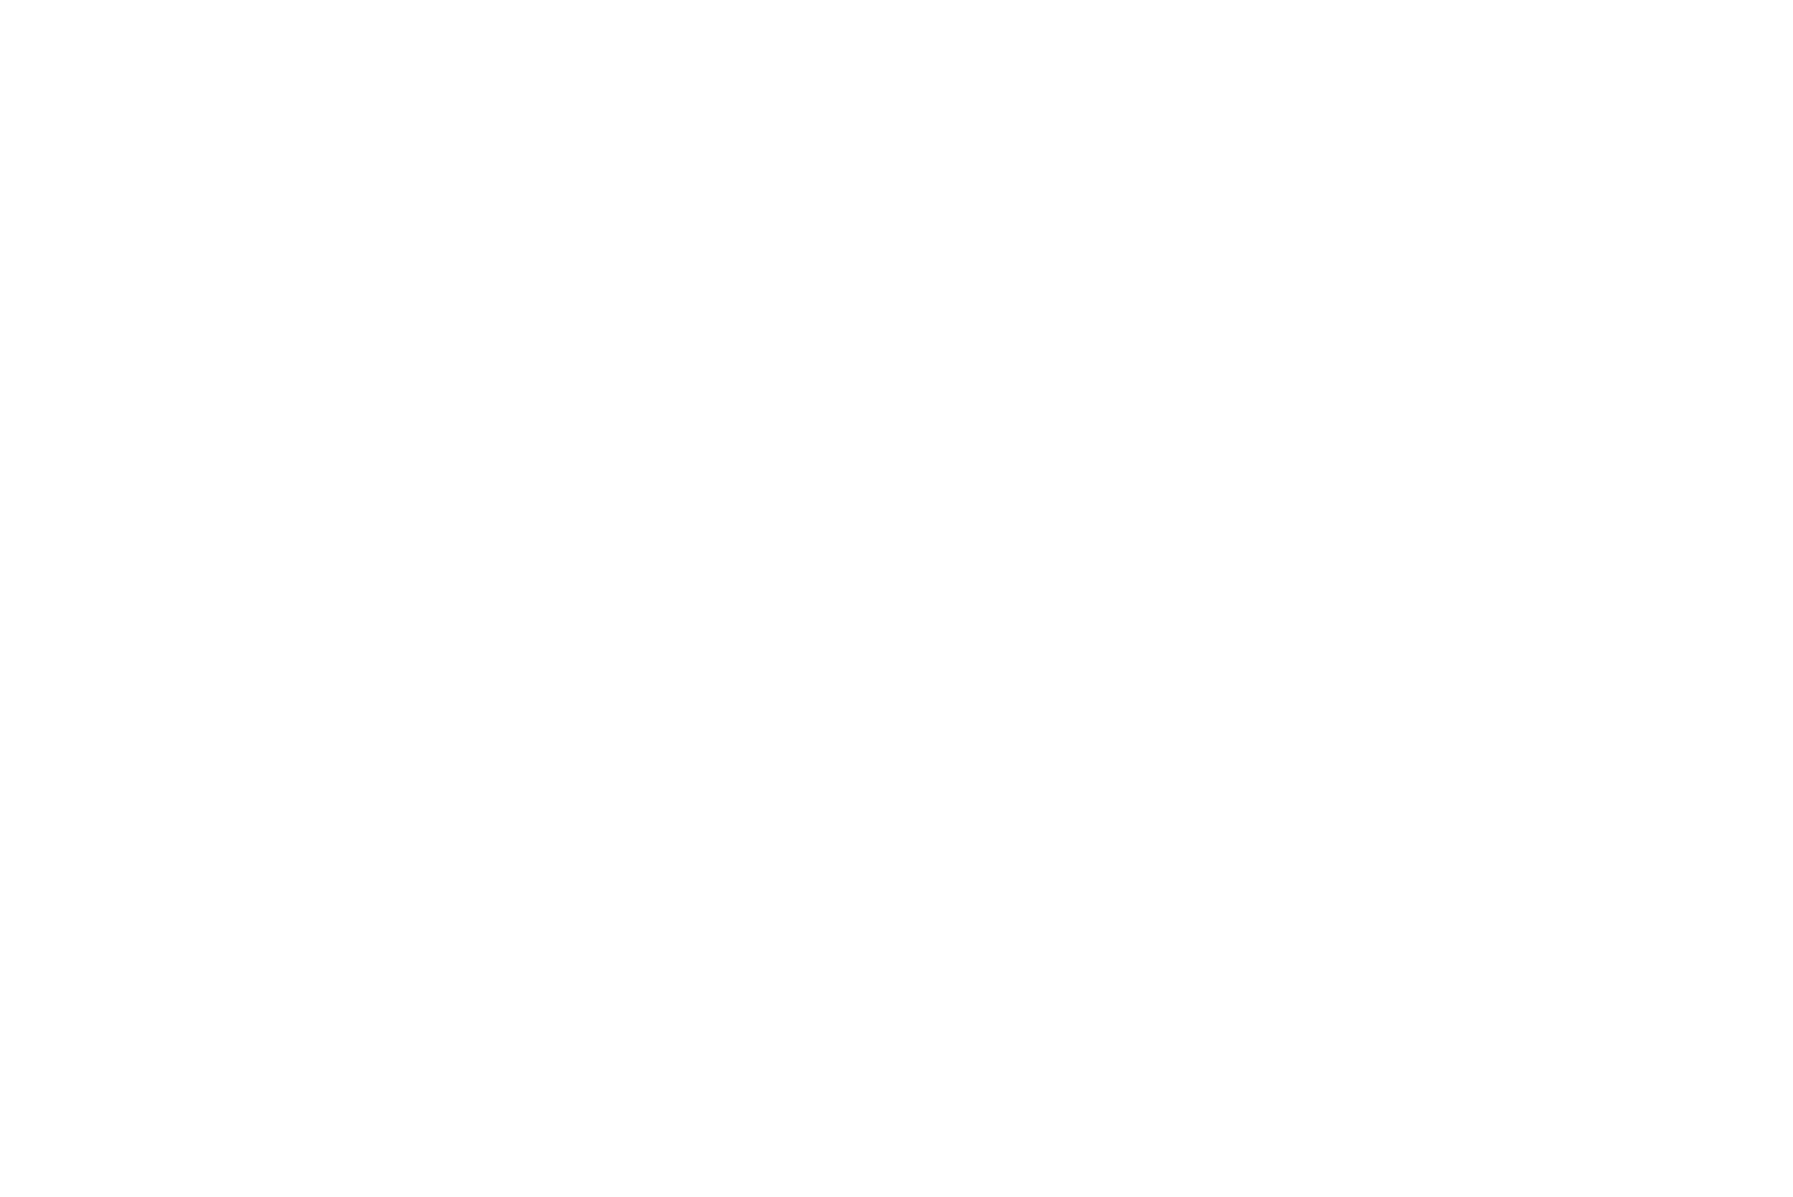 Northumberland Scouts